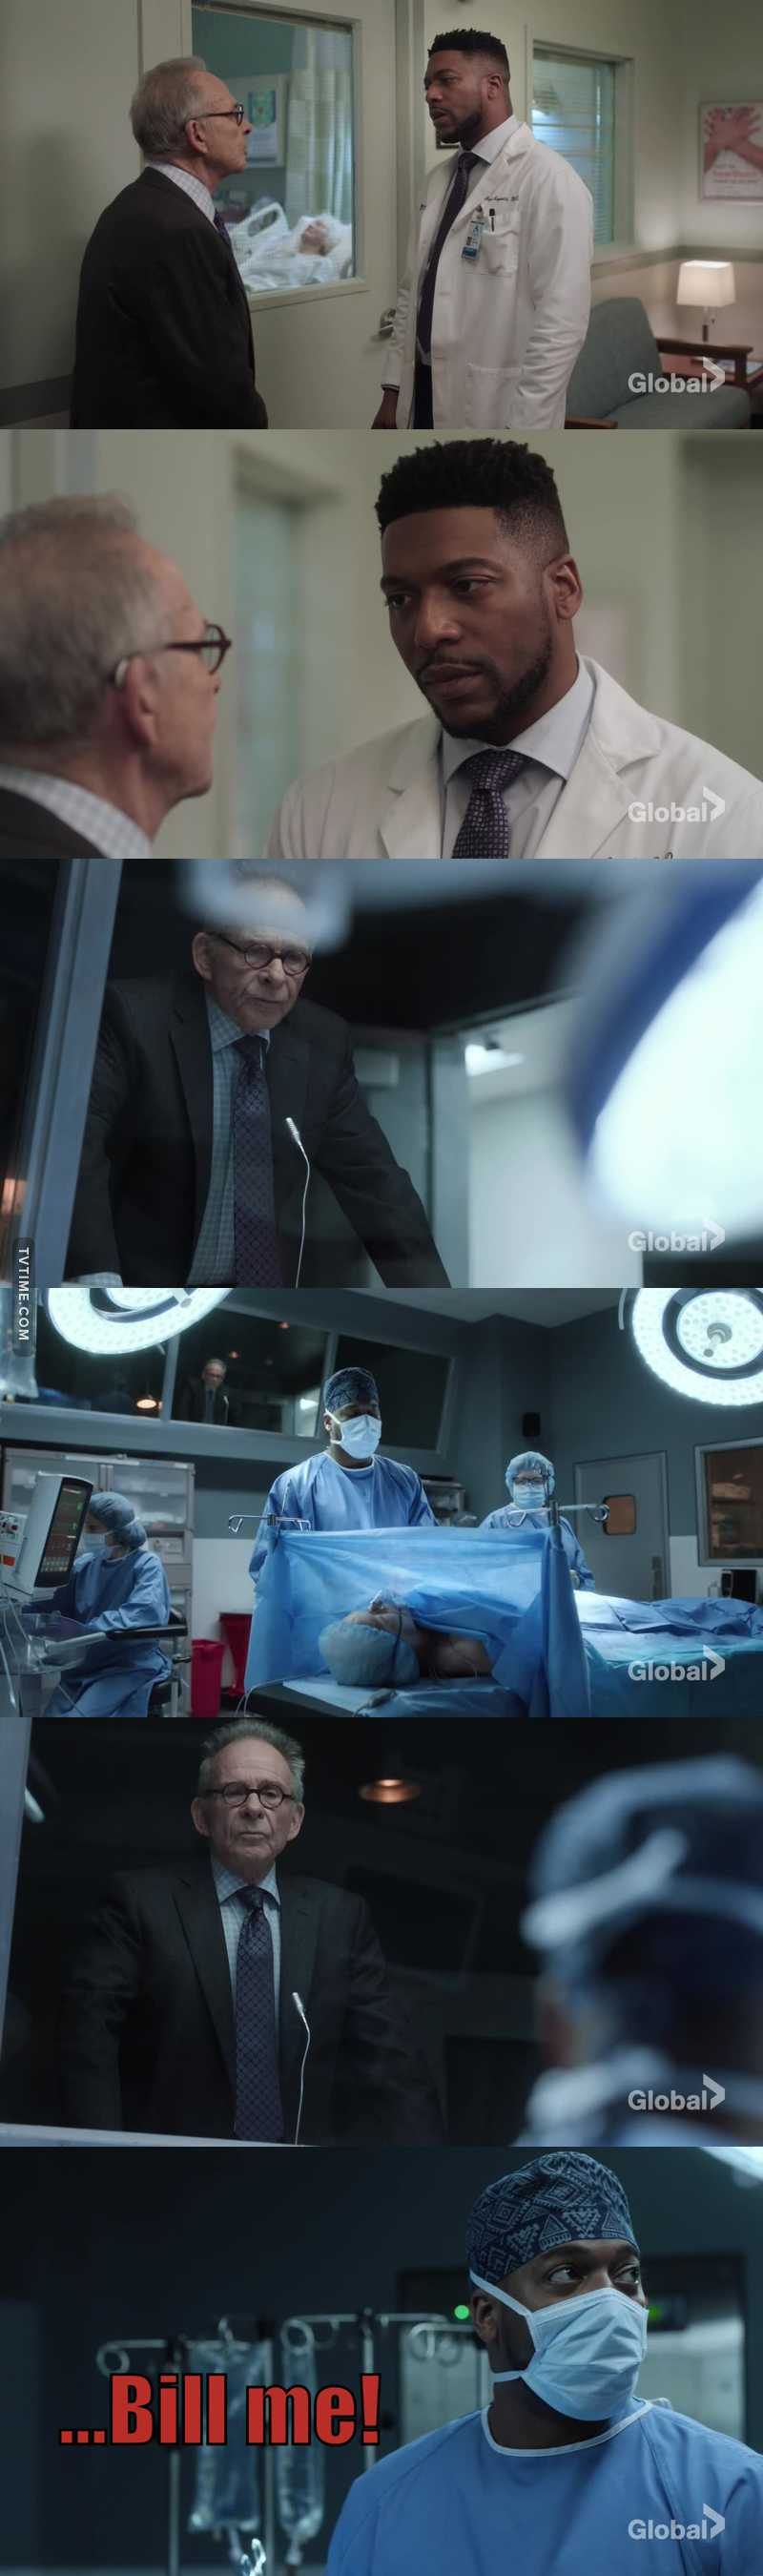 The fact that Reynolds is willing to pay his patient's bill tells me that Max has effected this hospital tremendously! What a legacy!